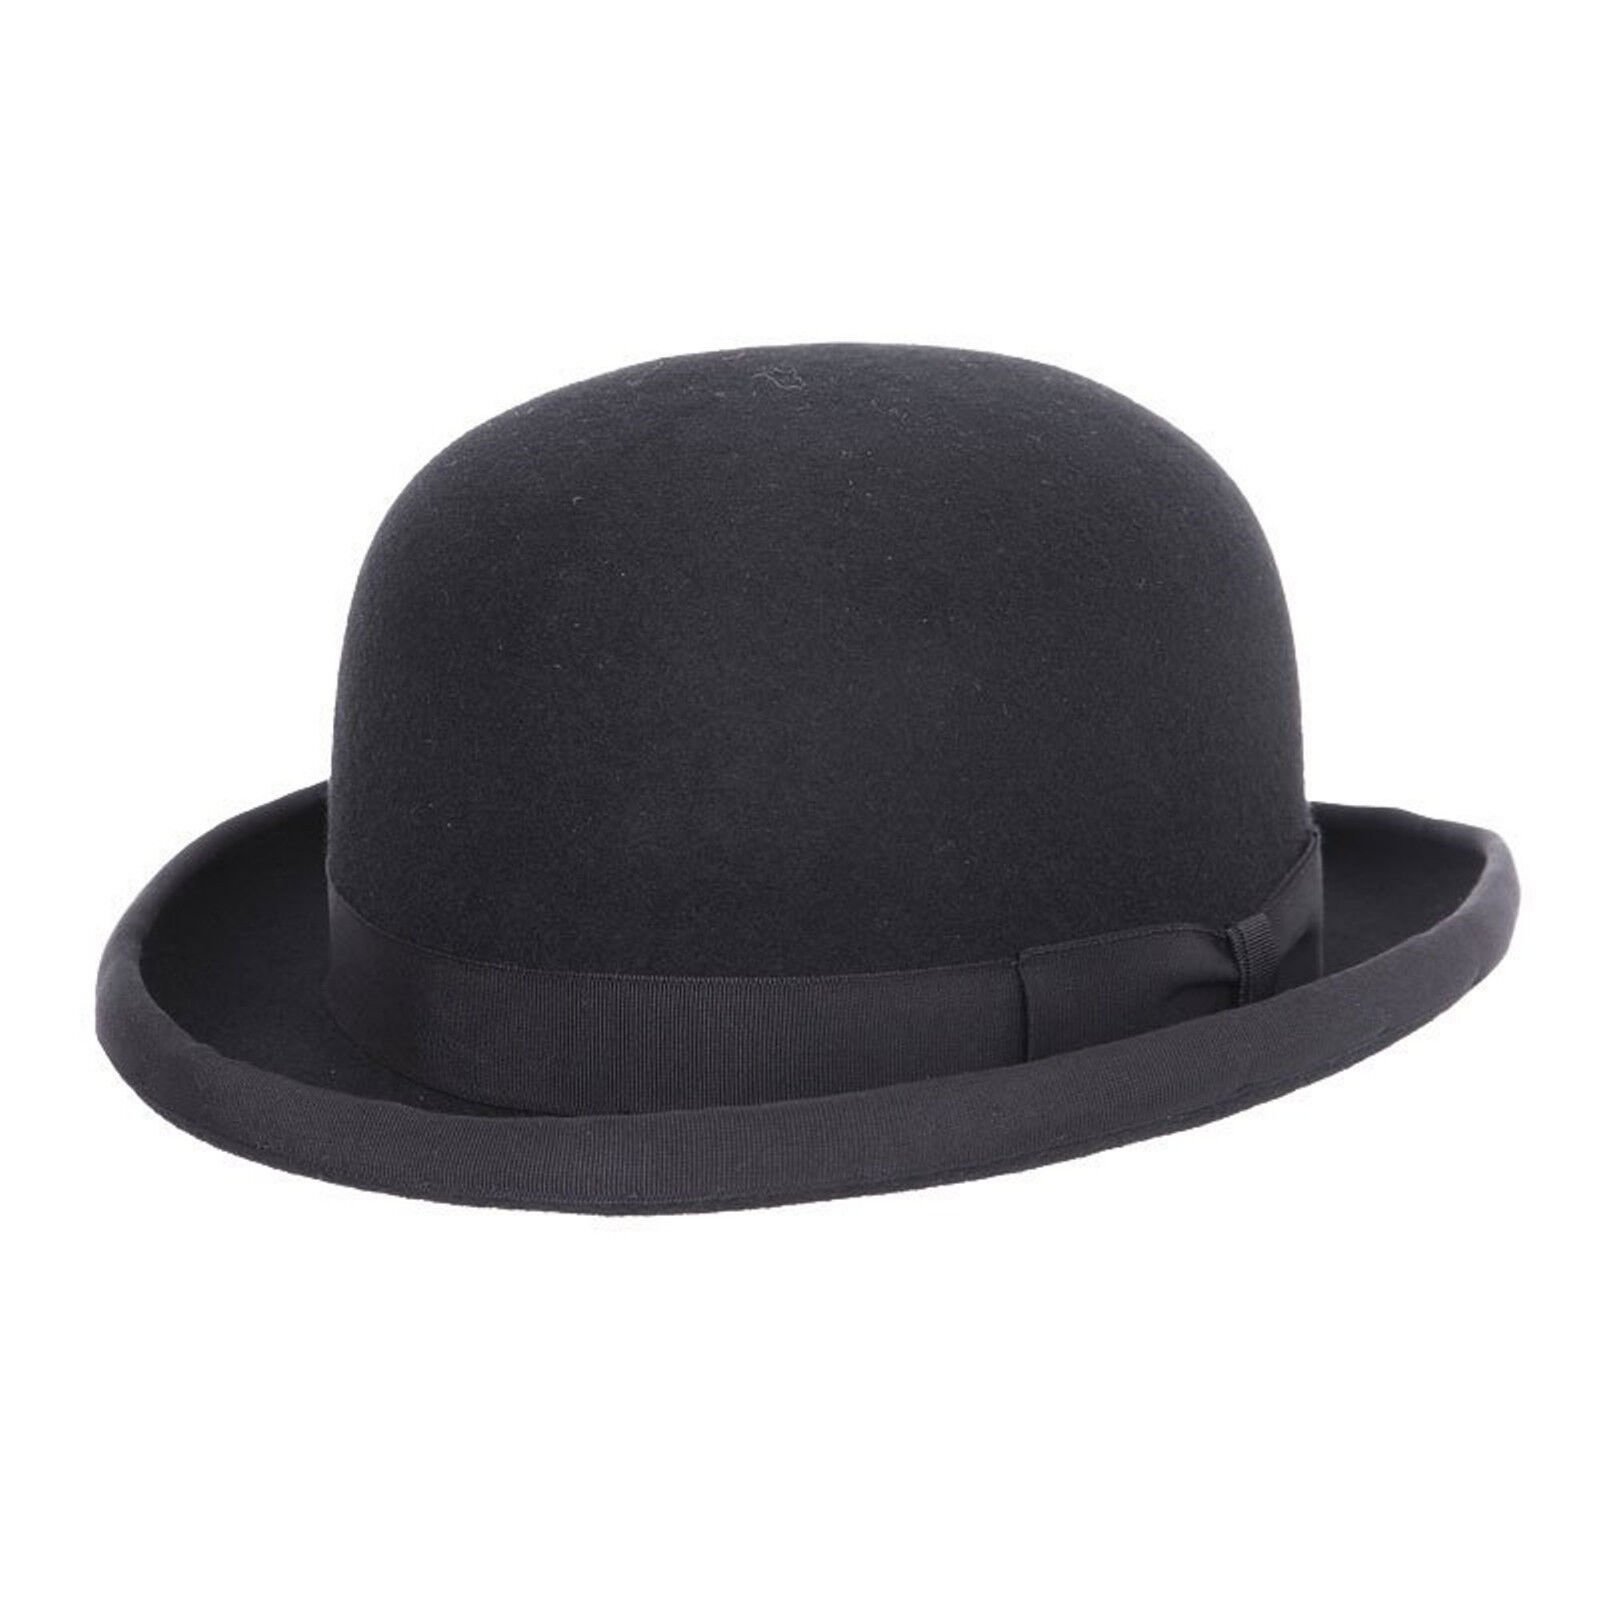 Childs Boys Girls 100/% Wool Felt Bowler Hat with Elasticated Band